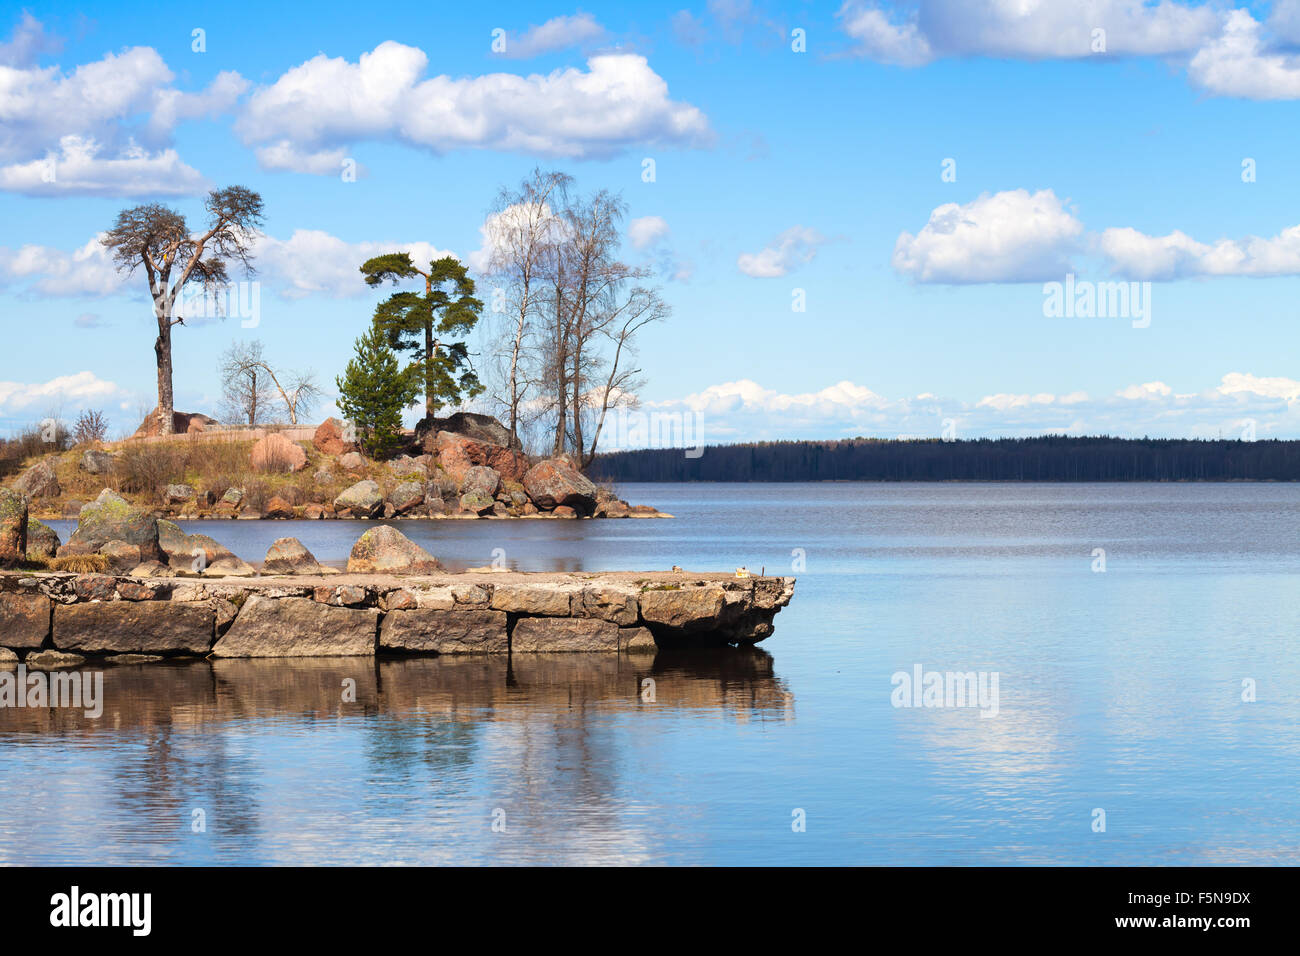 Mon Repos coastal landscape, park along the shoreline of the Vyborg Bay, Russia - Stock Image